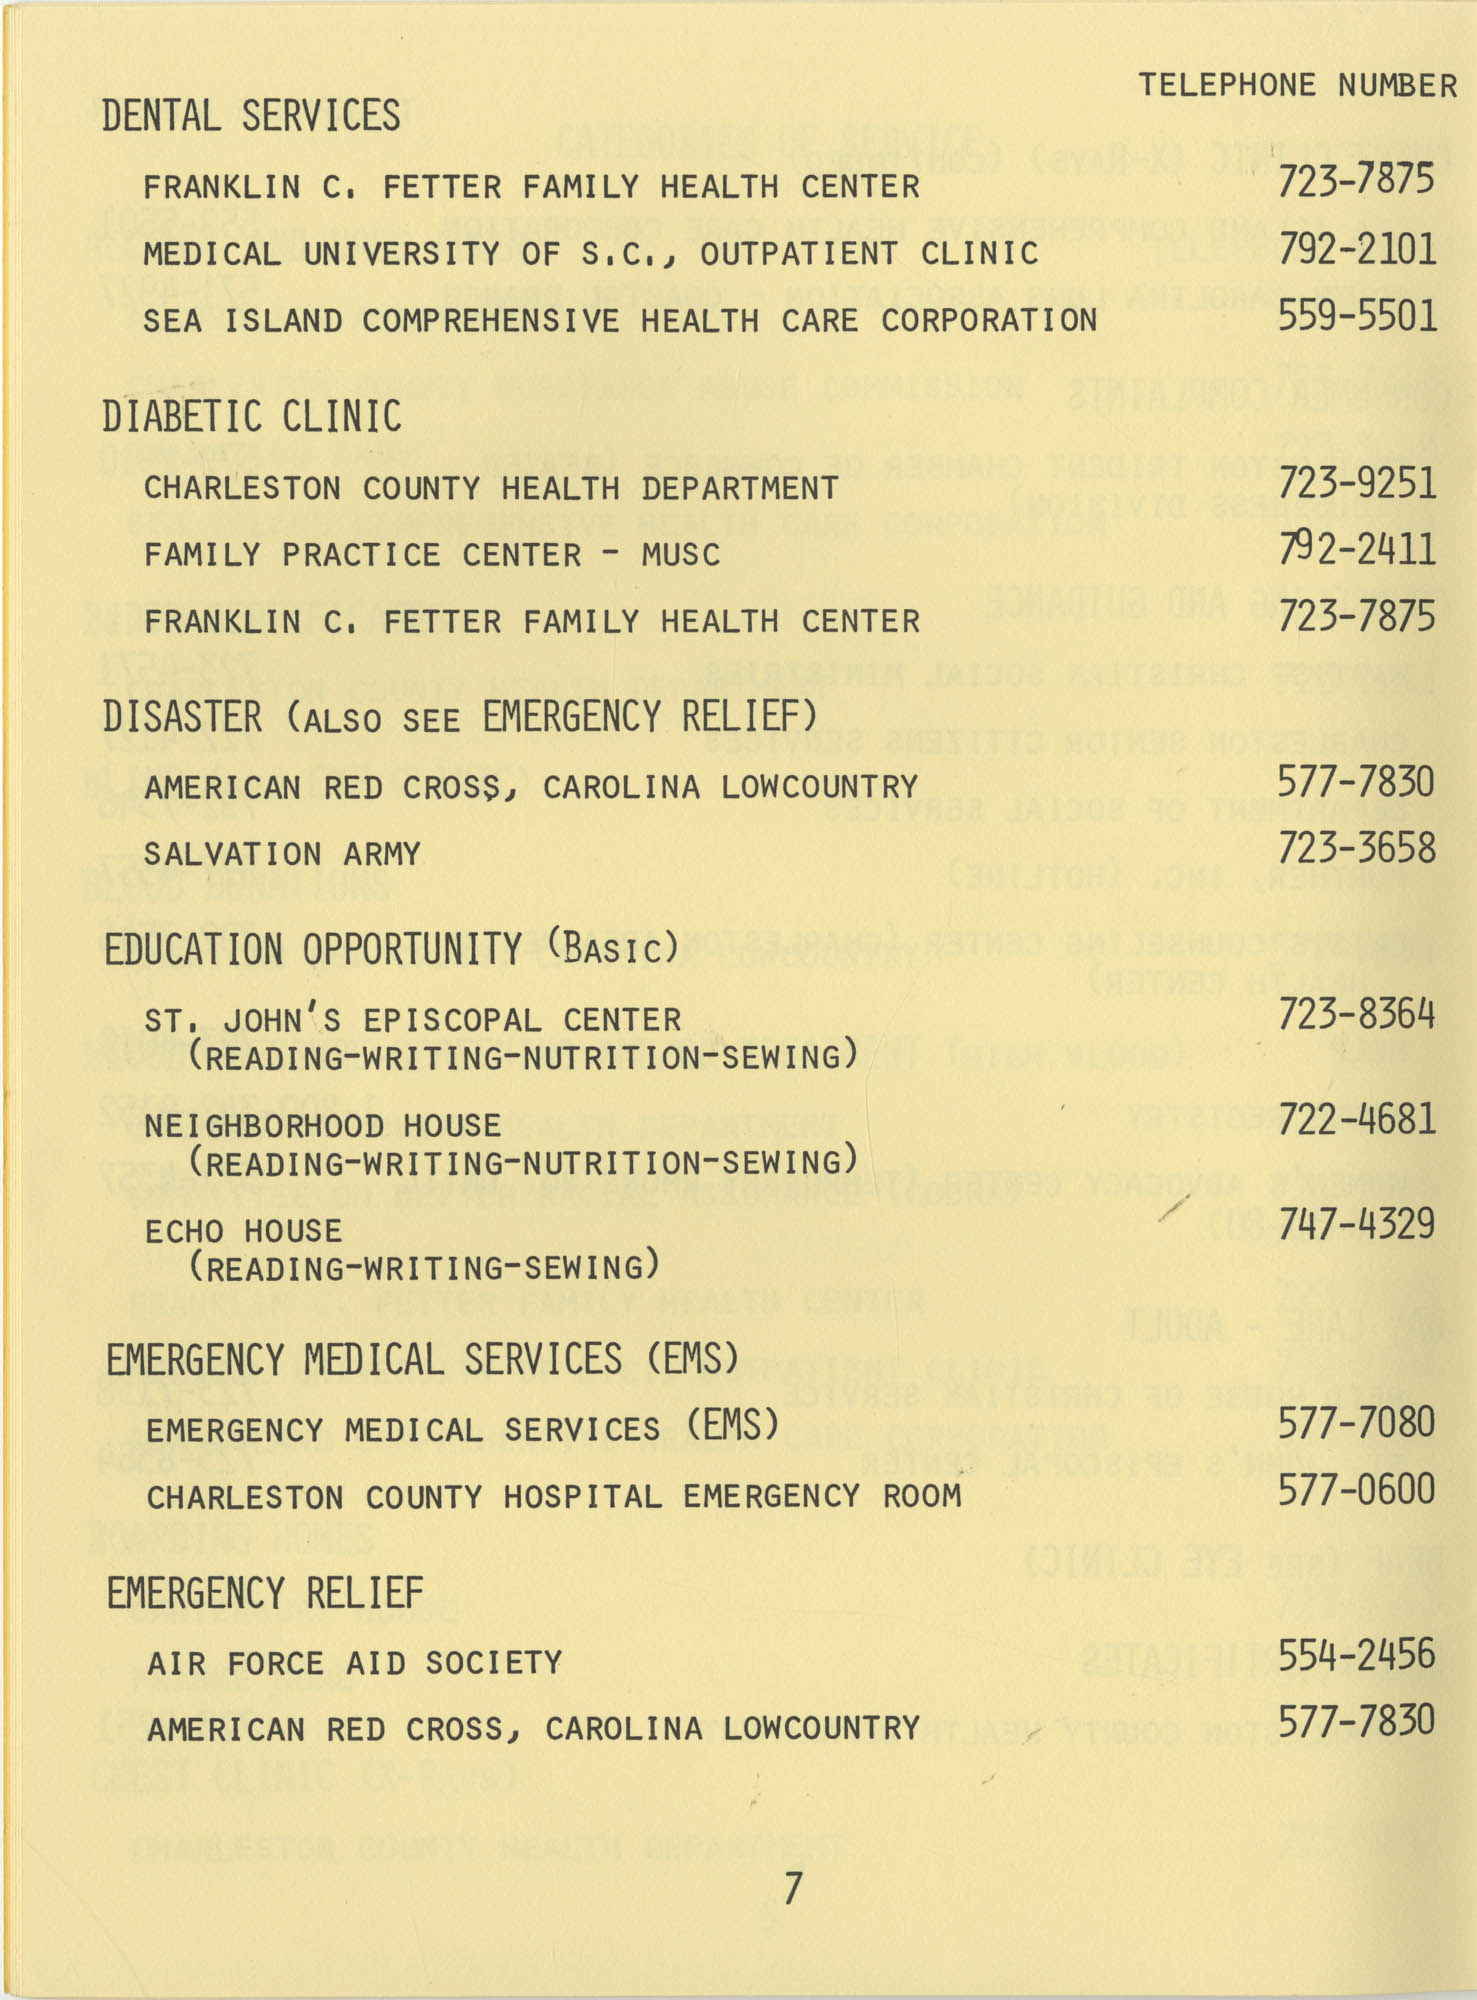 Telephone Line to Care for the Elderly, Page 7